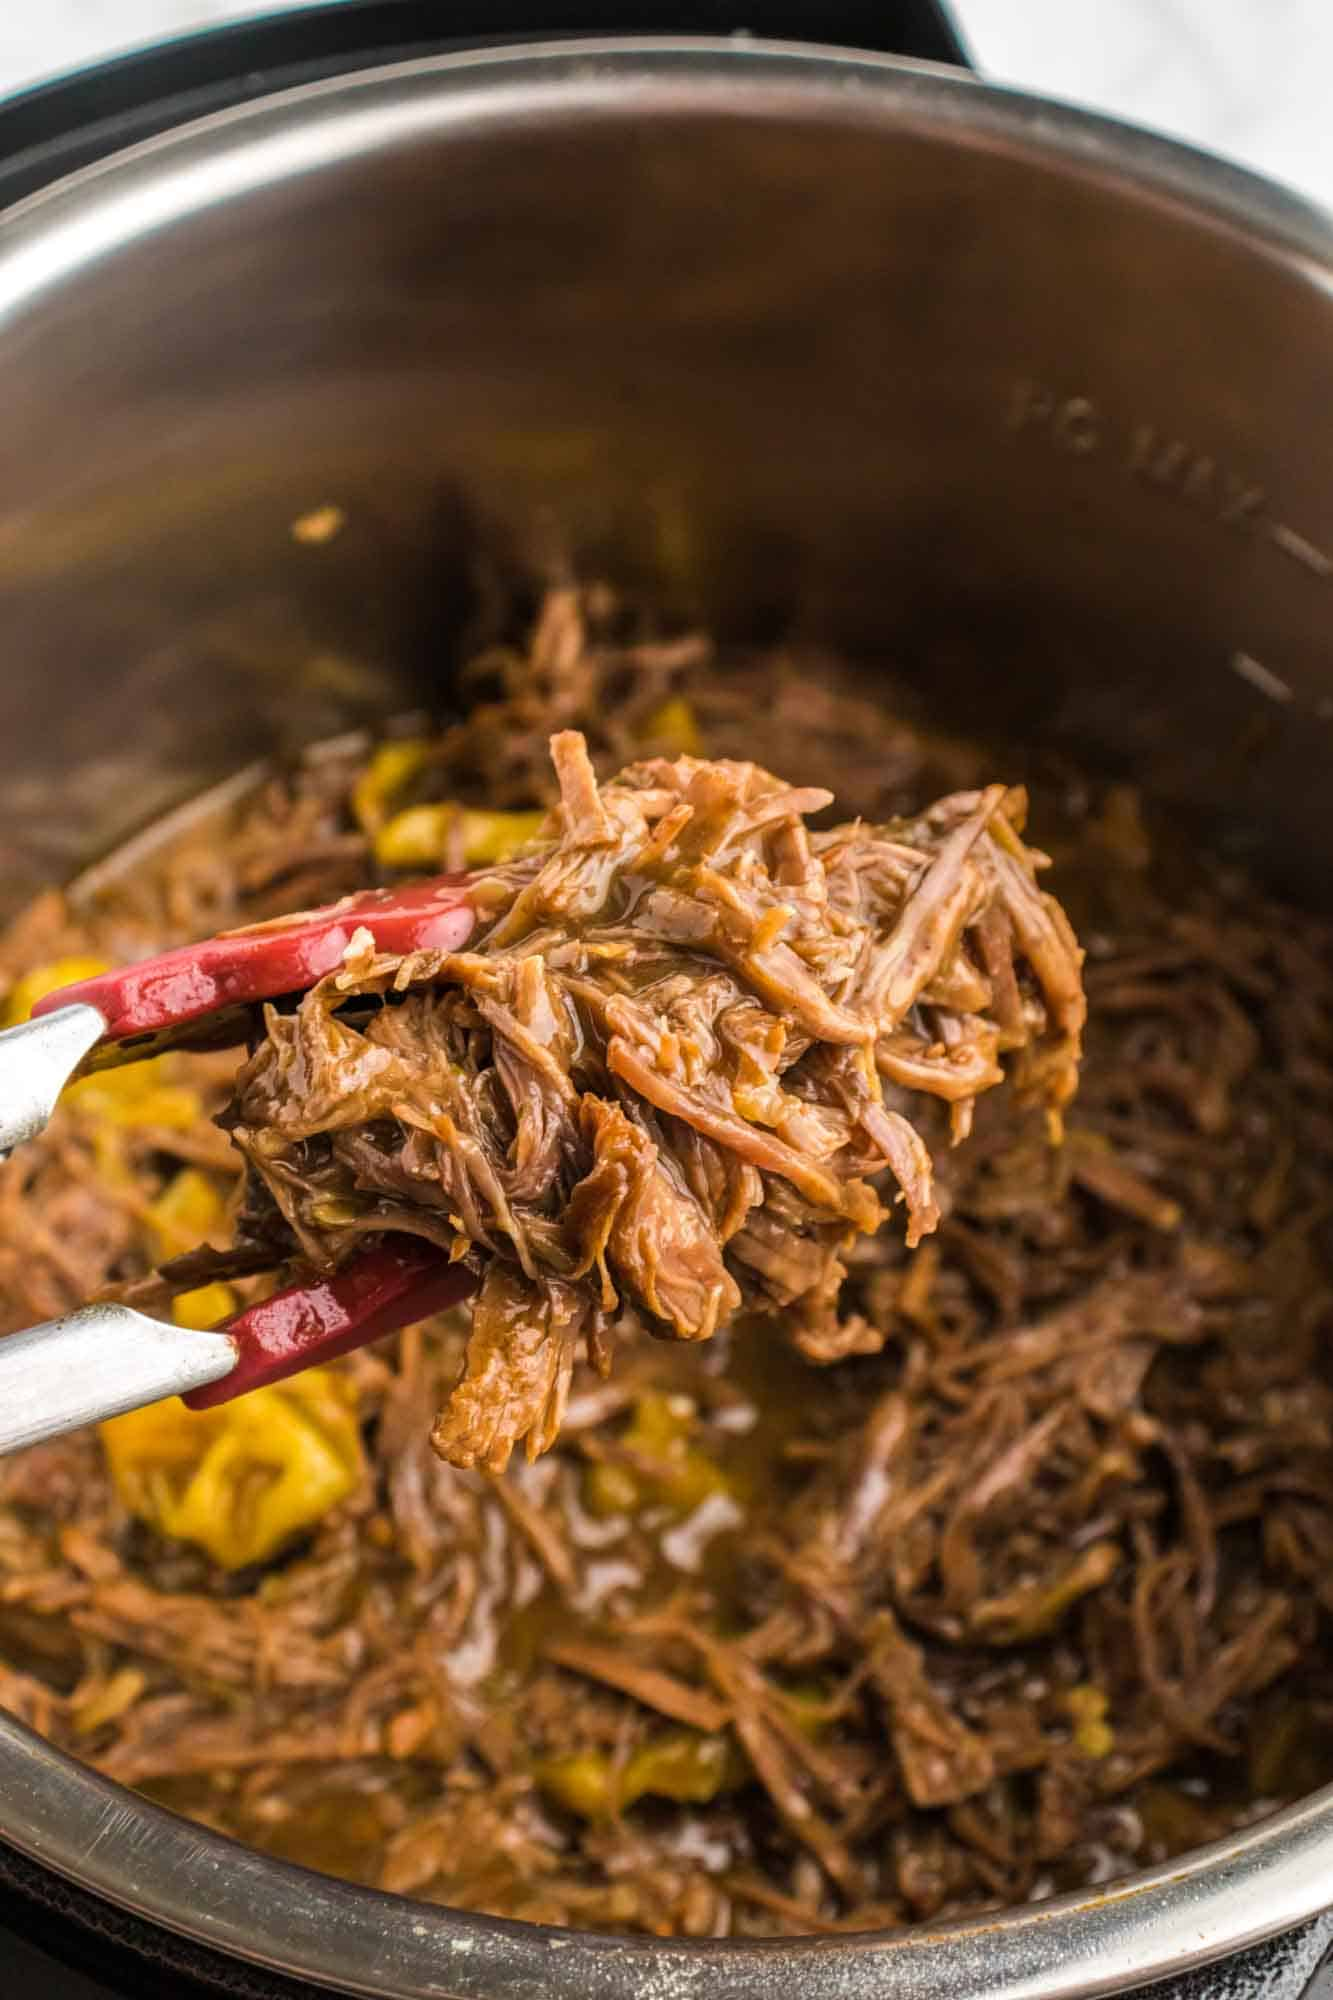 Taking shredded beef out of the Instant Pot using kitchen tongs